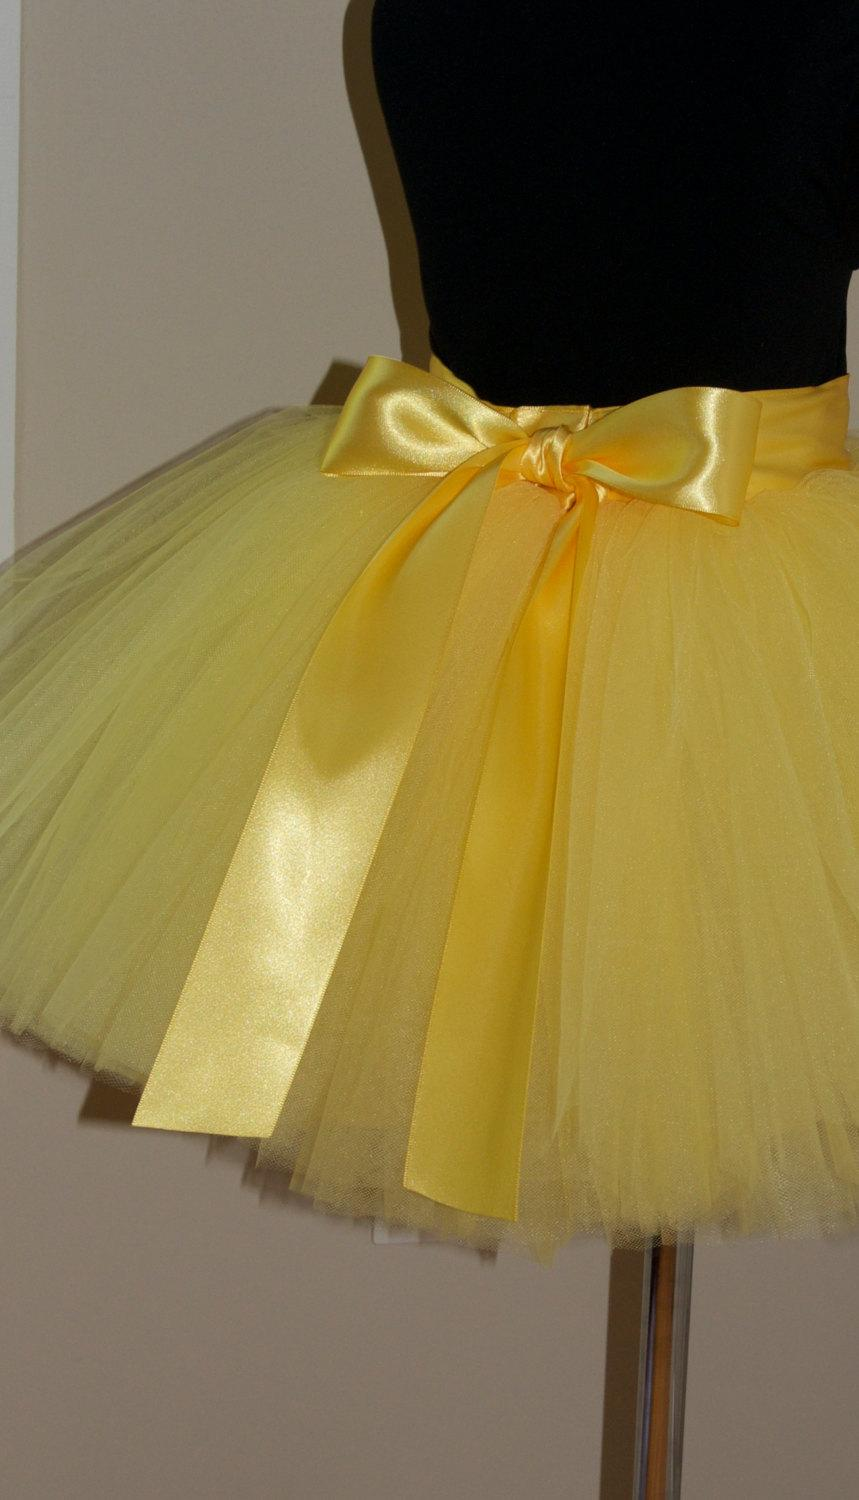 70217d97dd Yellow tutu skirt,girls tutu,Soft Tulle skirt,CUSTOM sewn  tutus,MyFabBoutique,